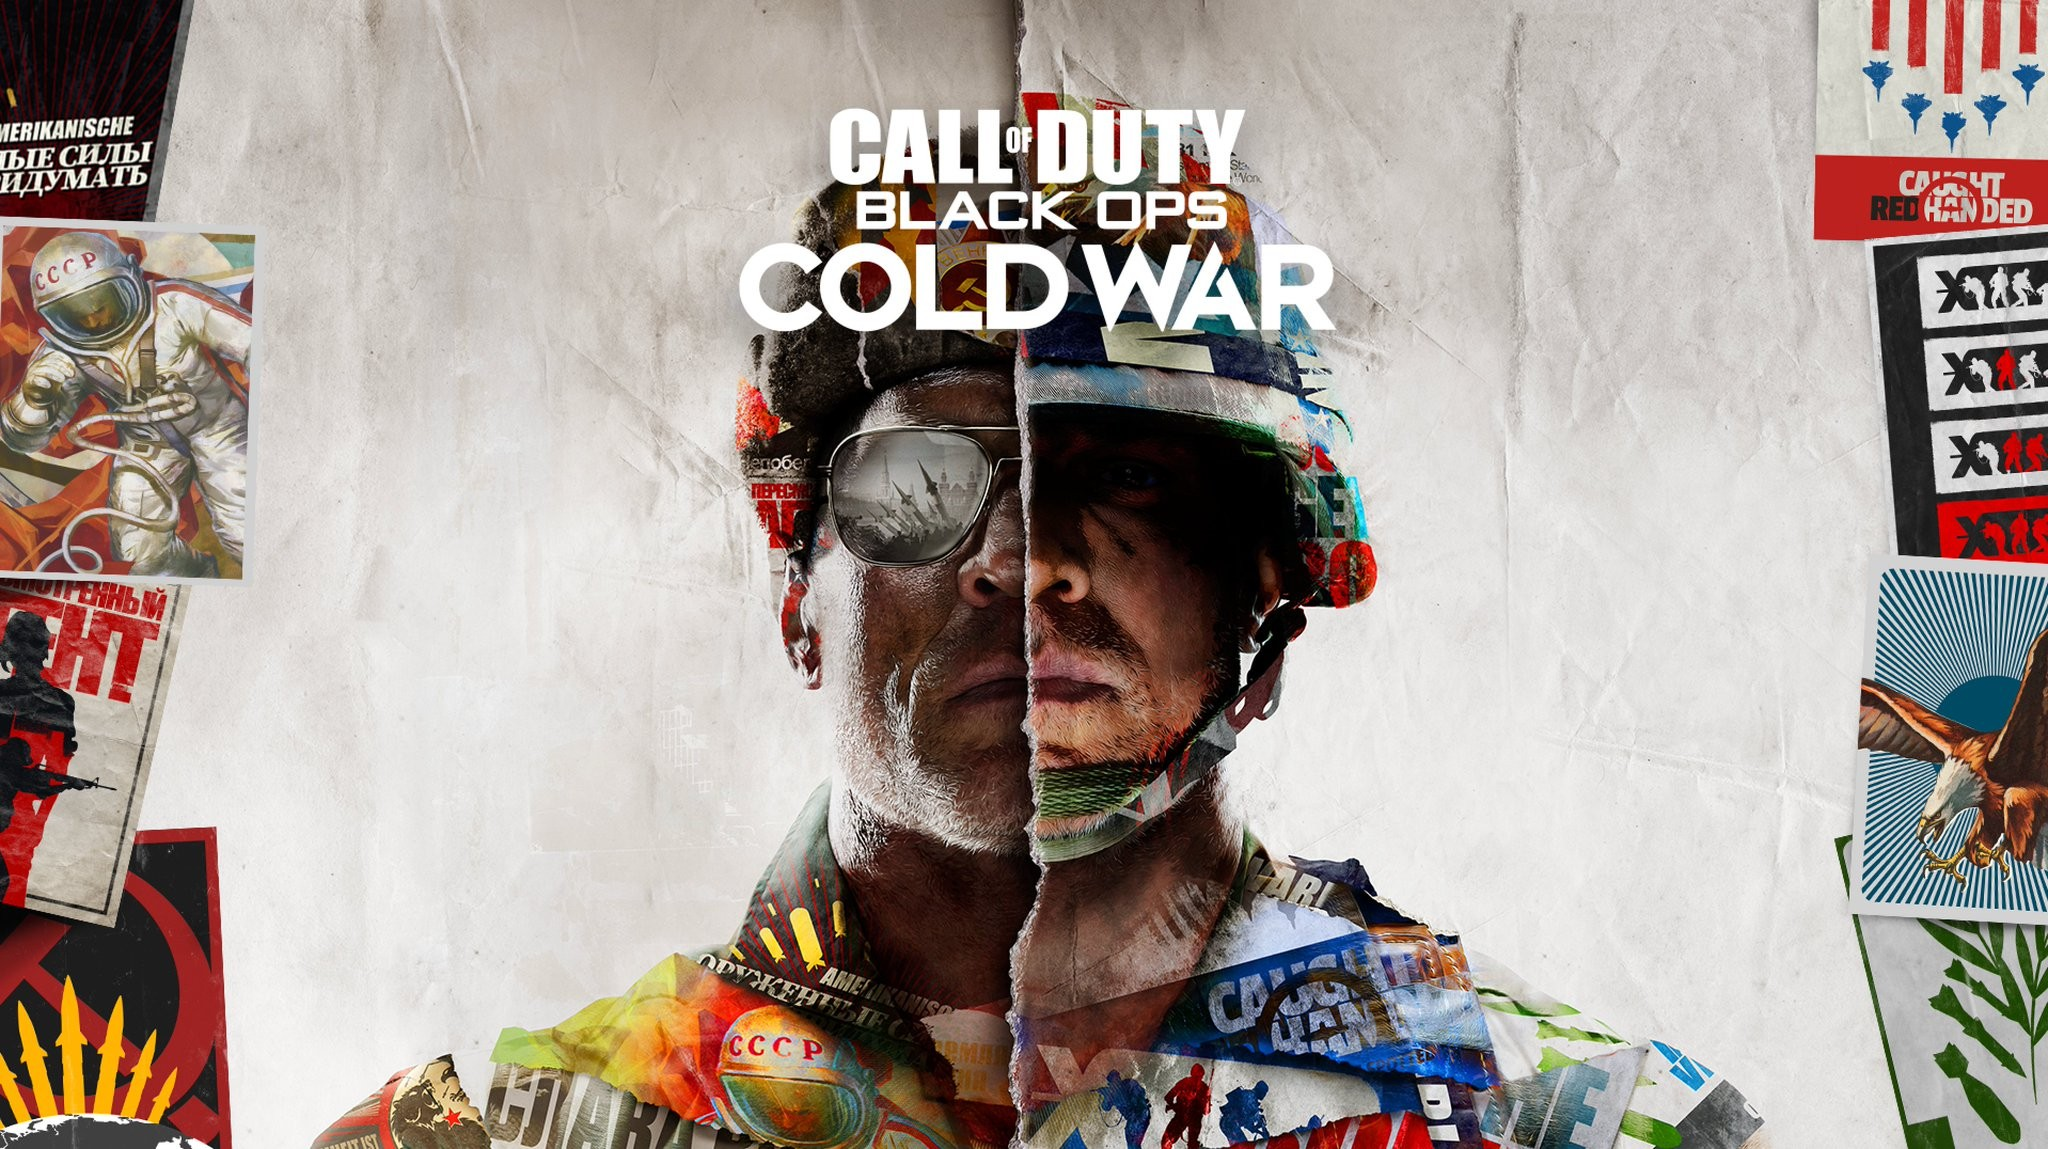 call of duty black ops cold war artwork ufficiale